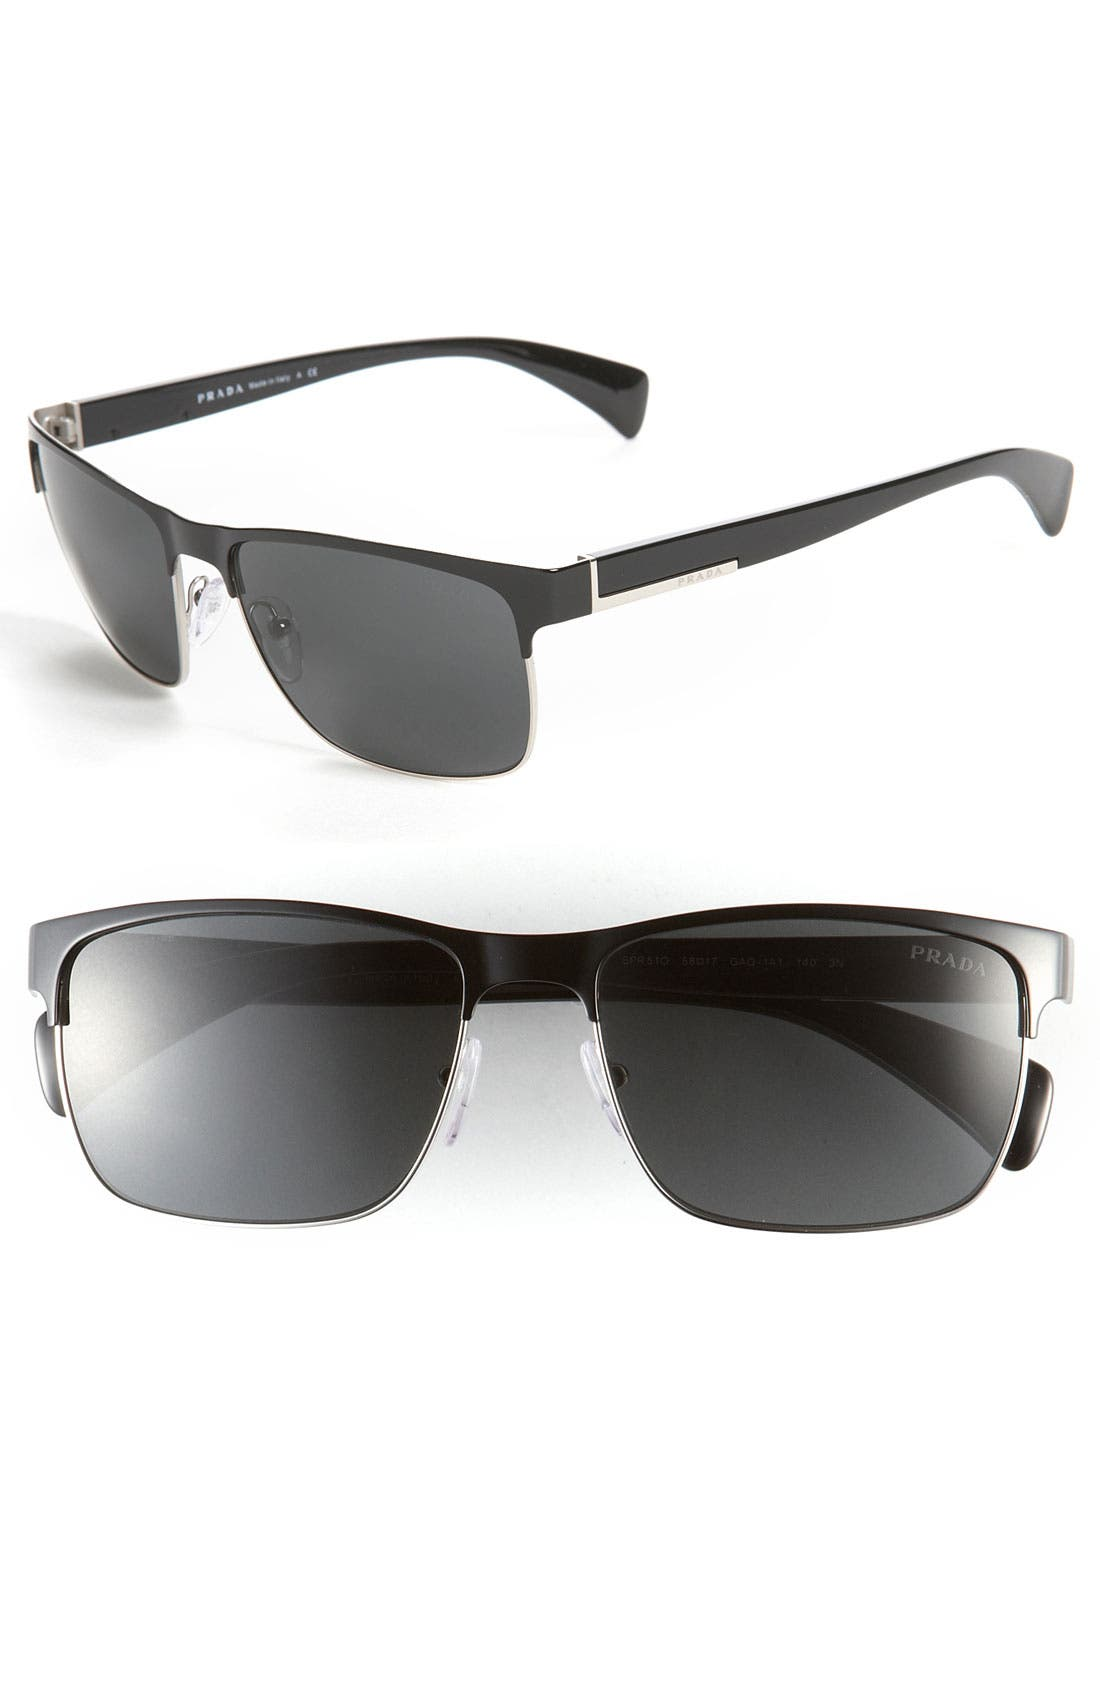 Main Image - Prada 58mm Sunglasses